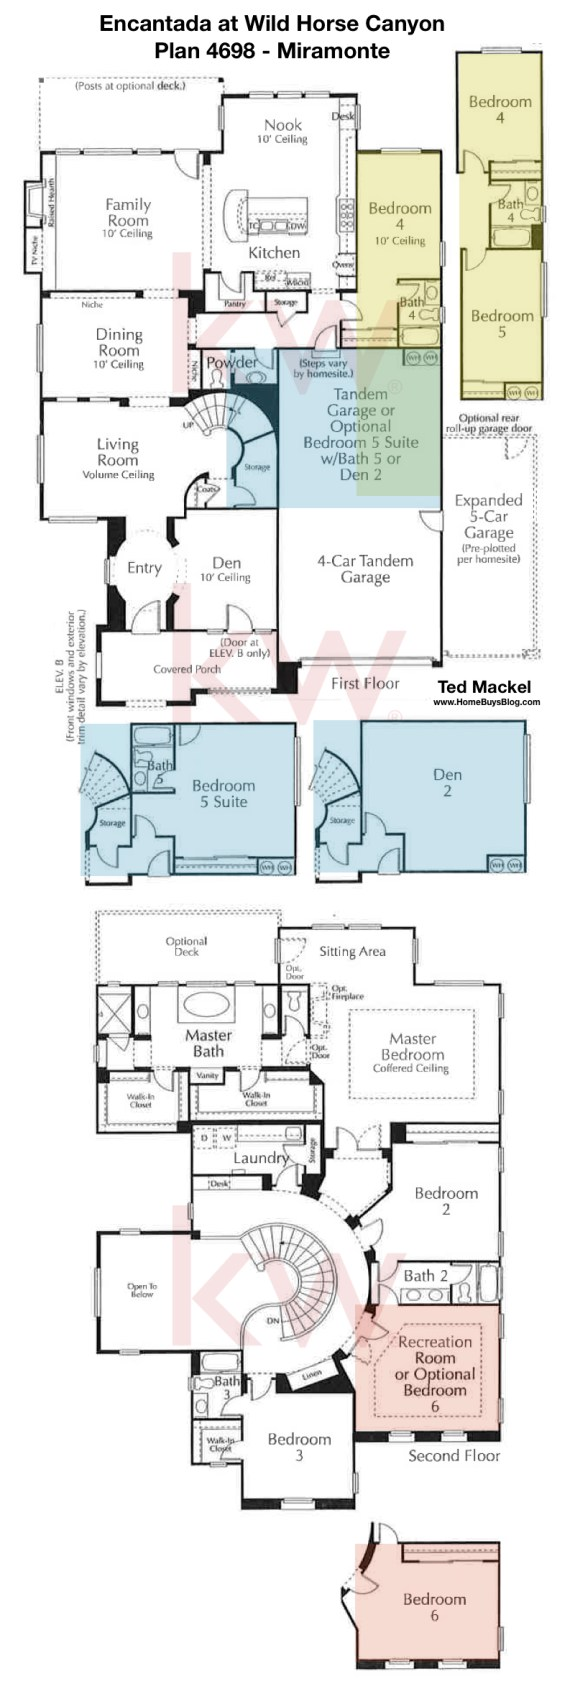 Encantada at Wild Horse Canyon Plan 4698 Floor Plan Miramonte